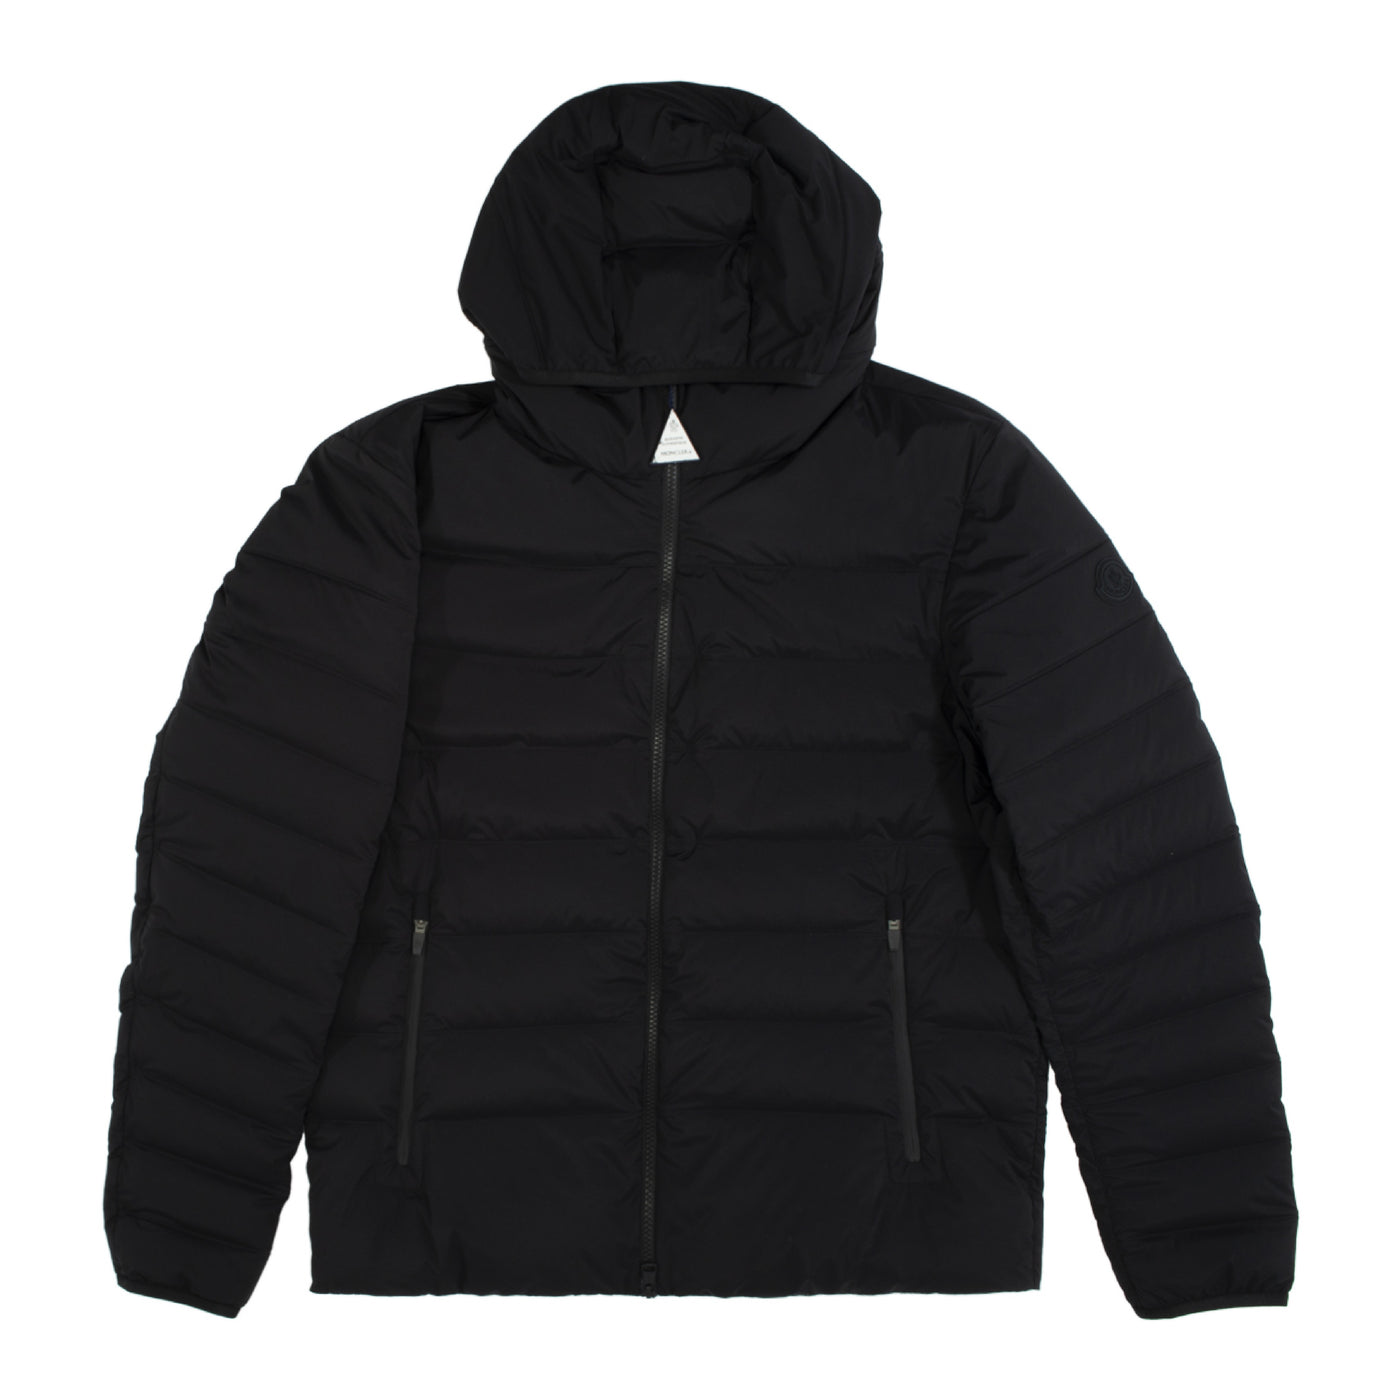 Load image into Gallery viewer, MONCLER EZE ZIP UP JACKET BLACK